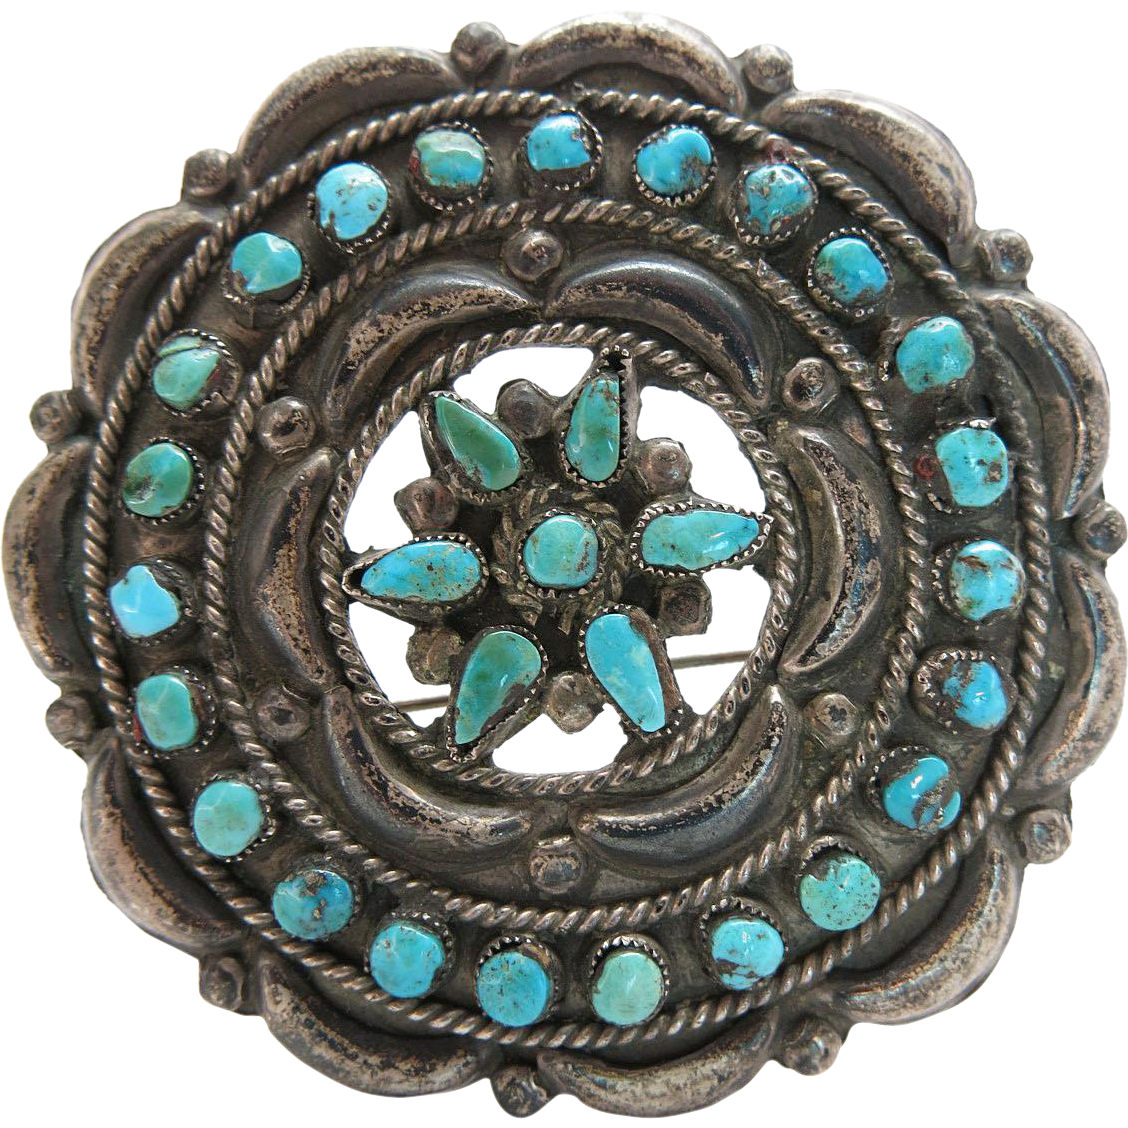 1940's Vintage Navajo Silver Brooch / Pin With Petit-Point And Snake-Eye Turquoise - 1940's Vintage Navajo Silver Brooch / Pin With Petit-Point And Snake-Eye Turquoise